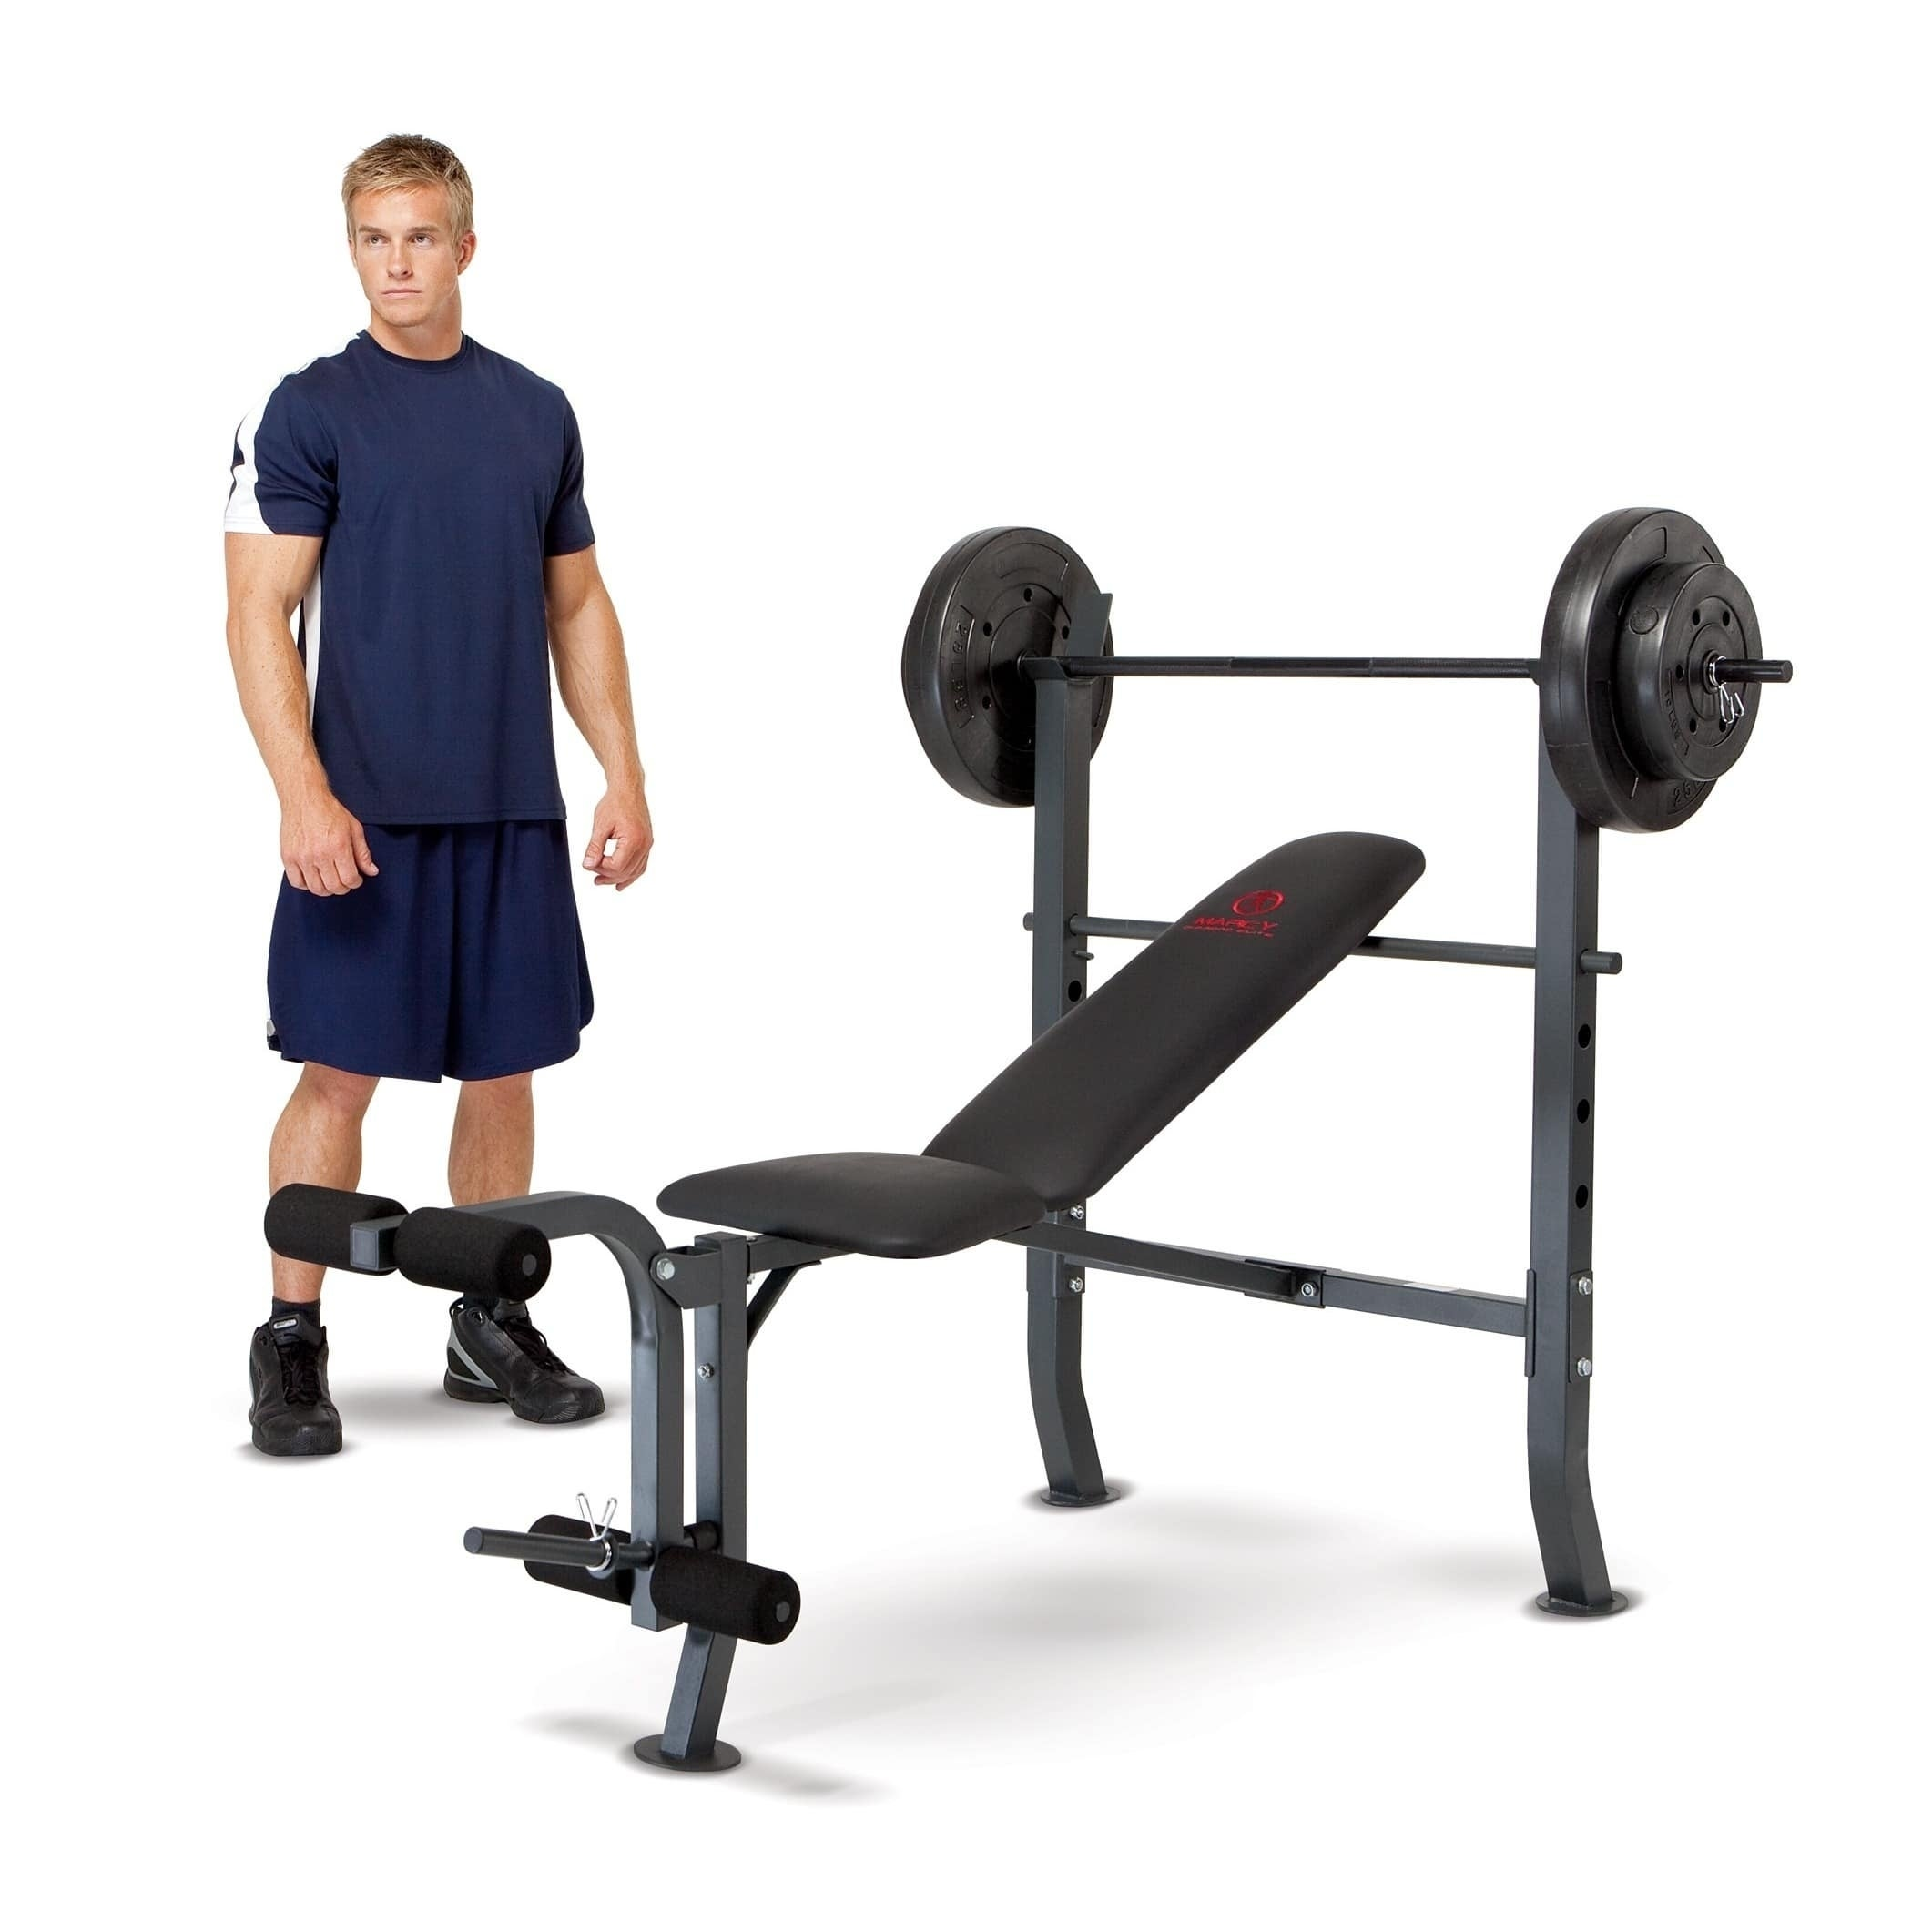 IMPEX Marcy 80-pound Weight Set Workout Bench (Marcy Olym...